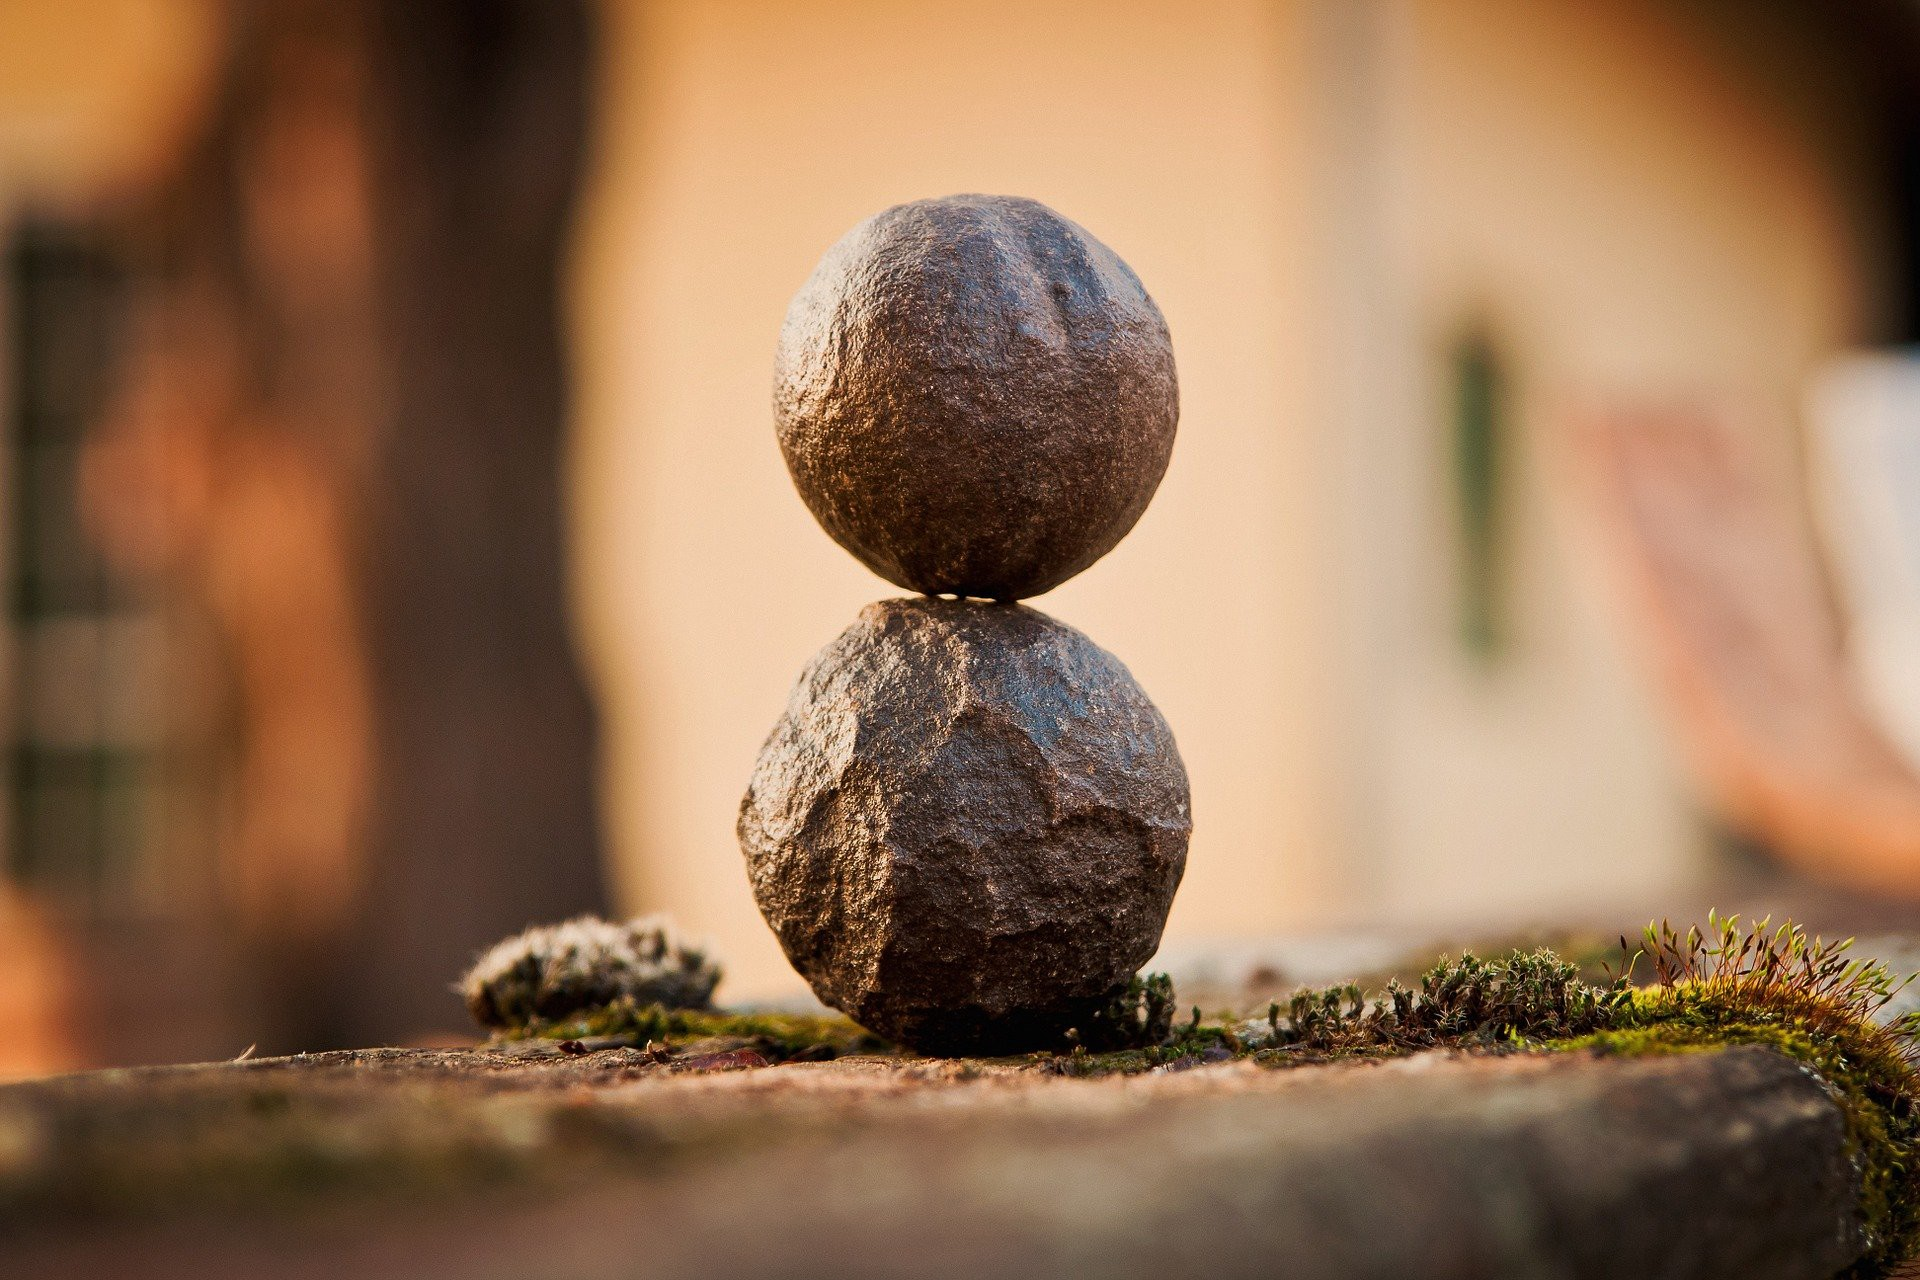 Serene photo of two spherical rocks resting on top of each other, with a warm orange-brown background and some moss.